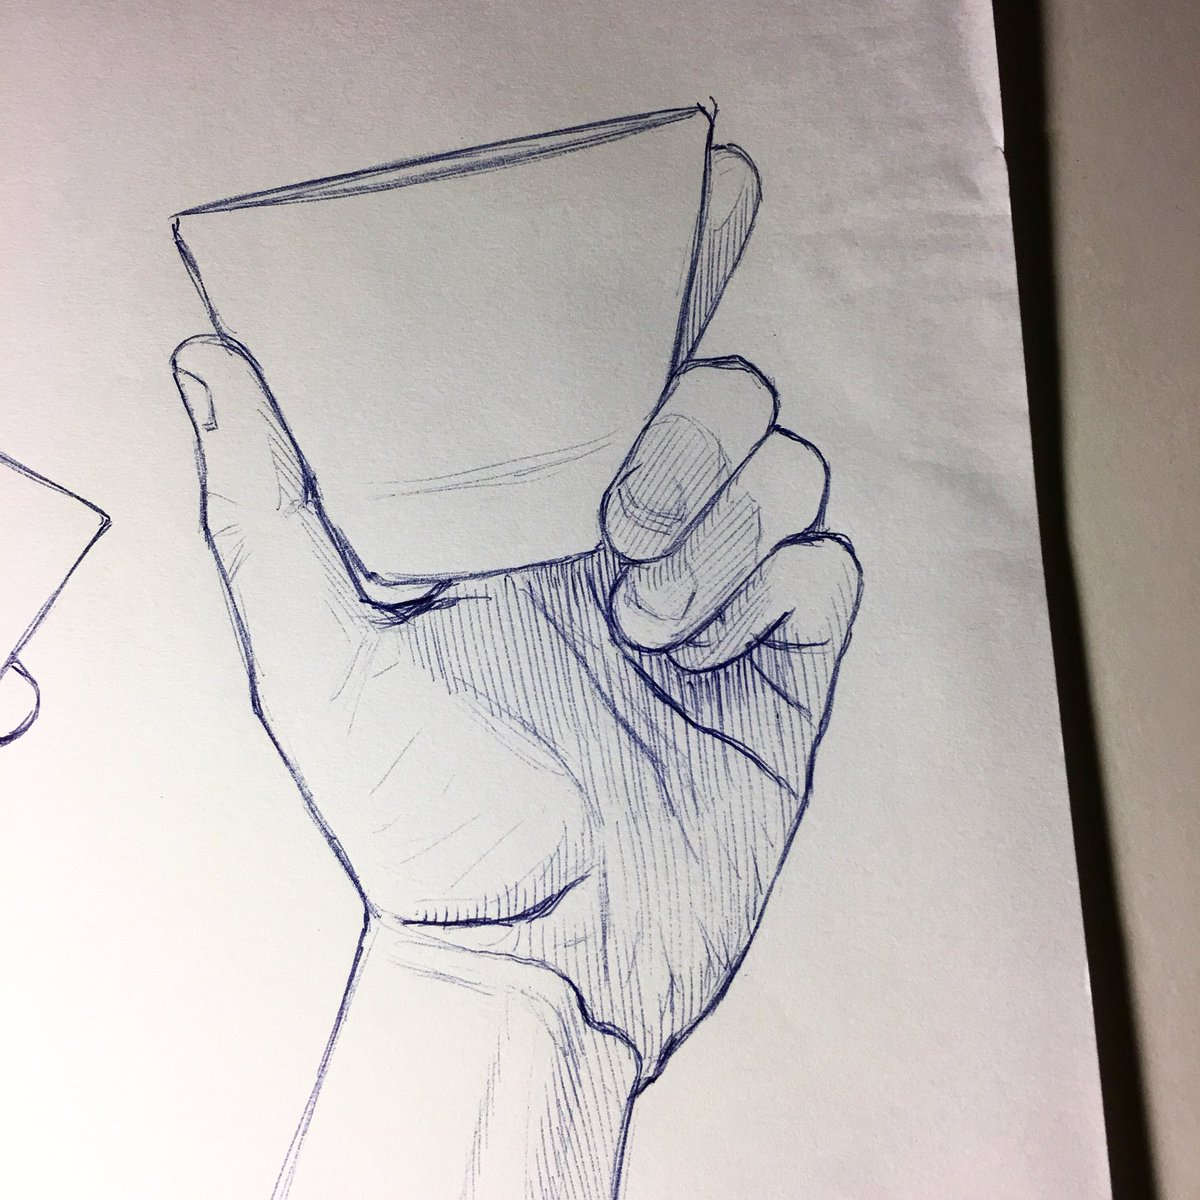 mark crilley on twitter hand drawing practice is drawing hands